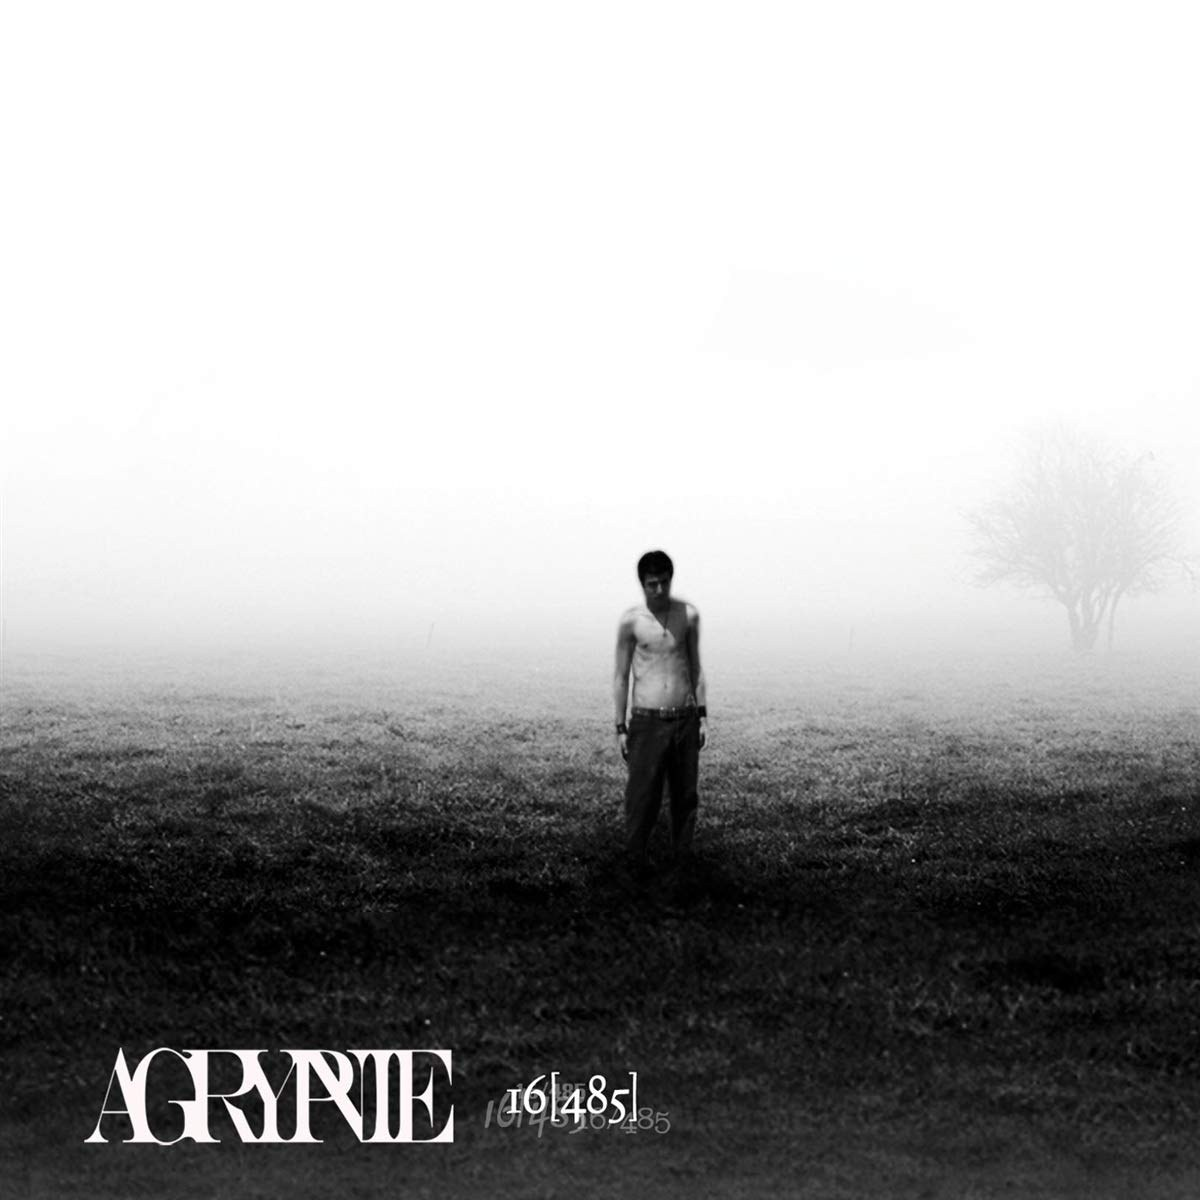 Review for Agrypnie - 16[485]